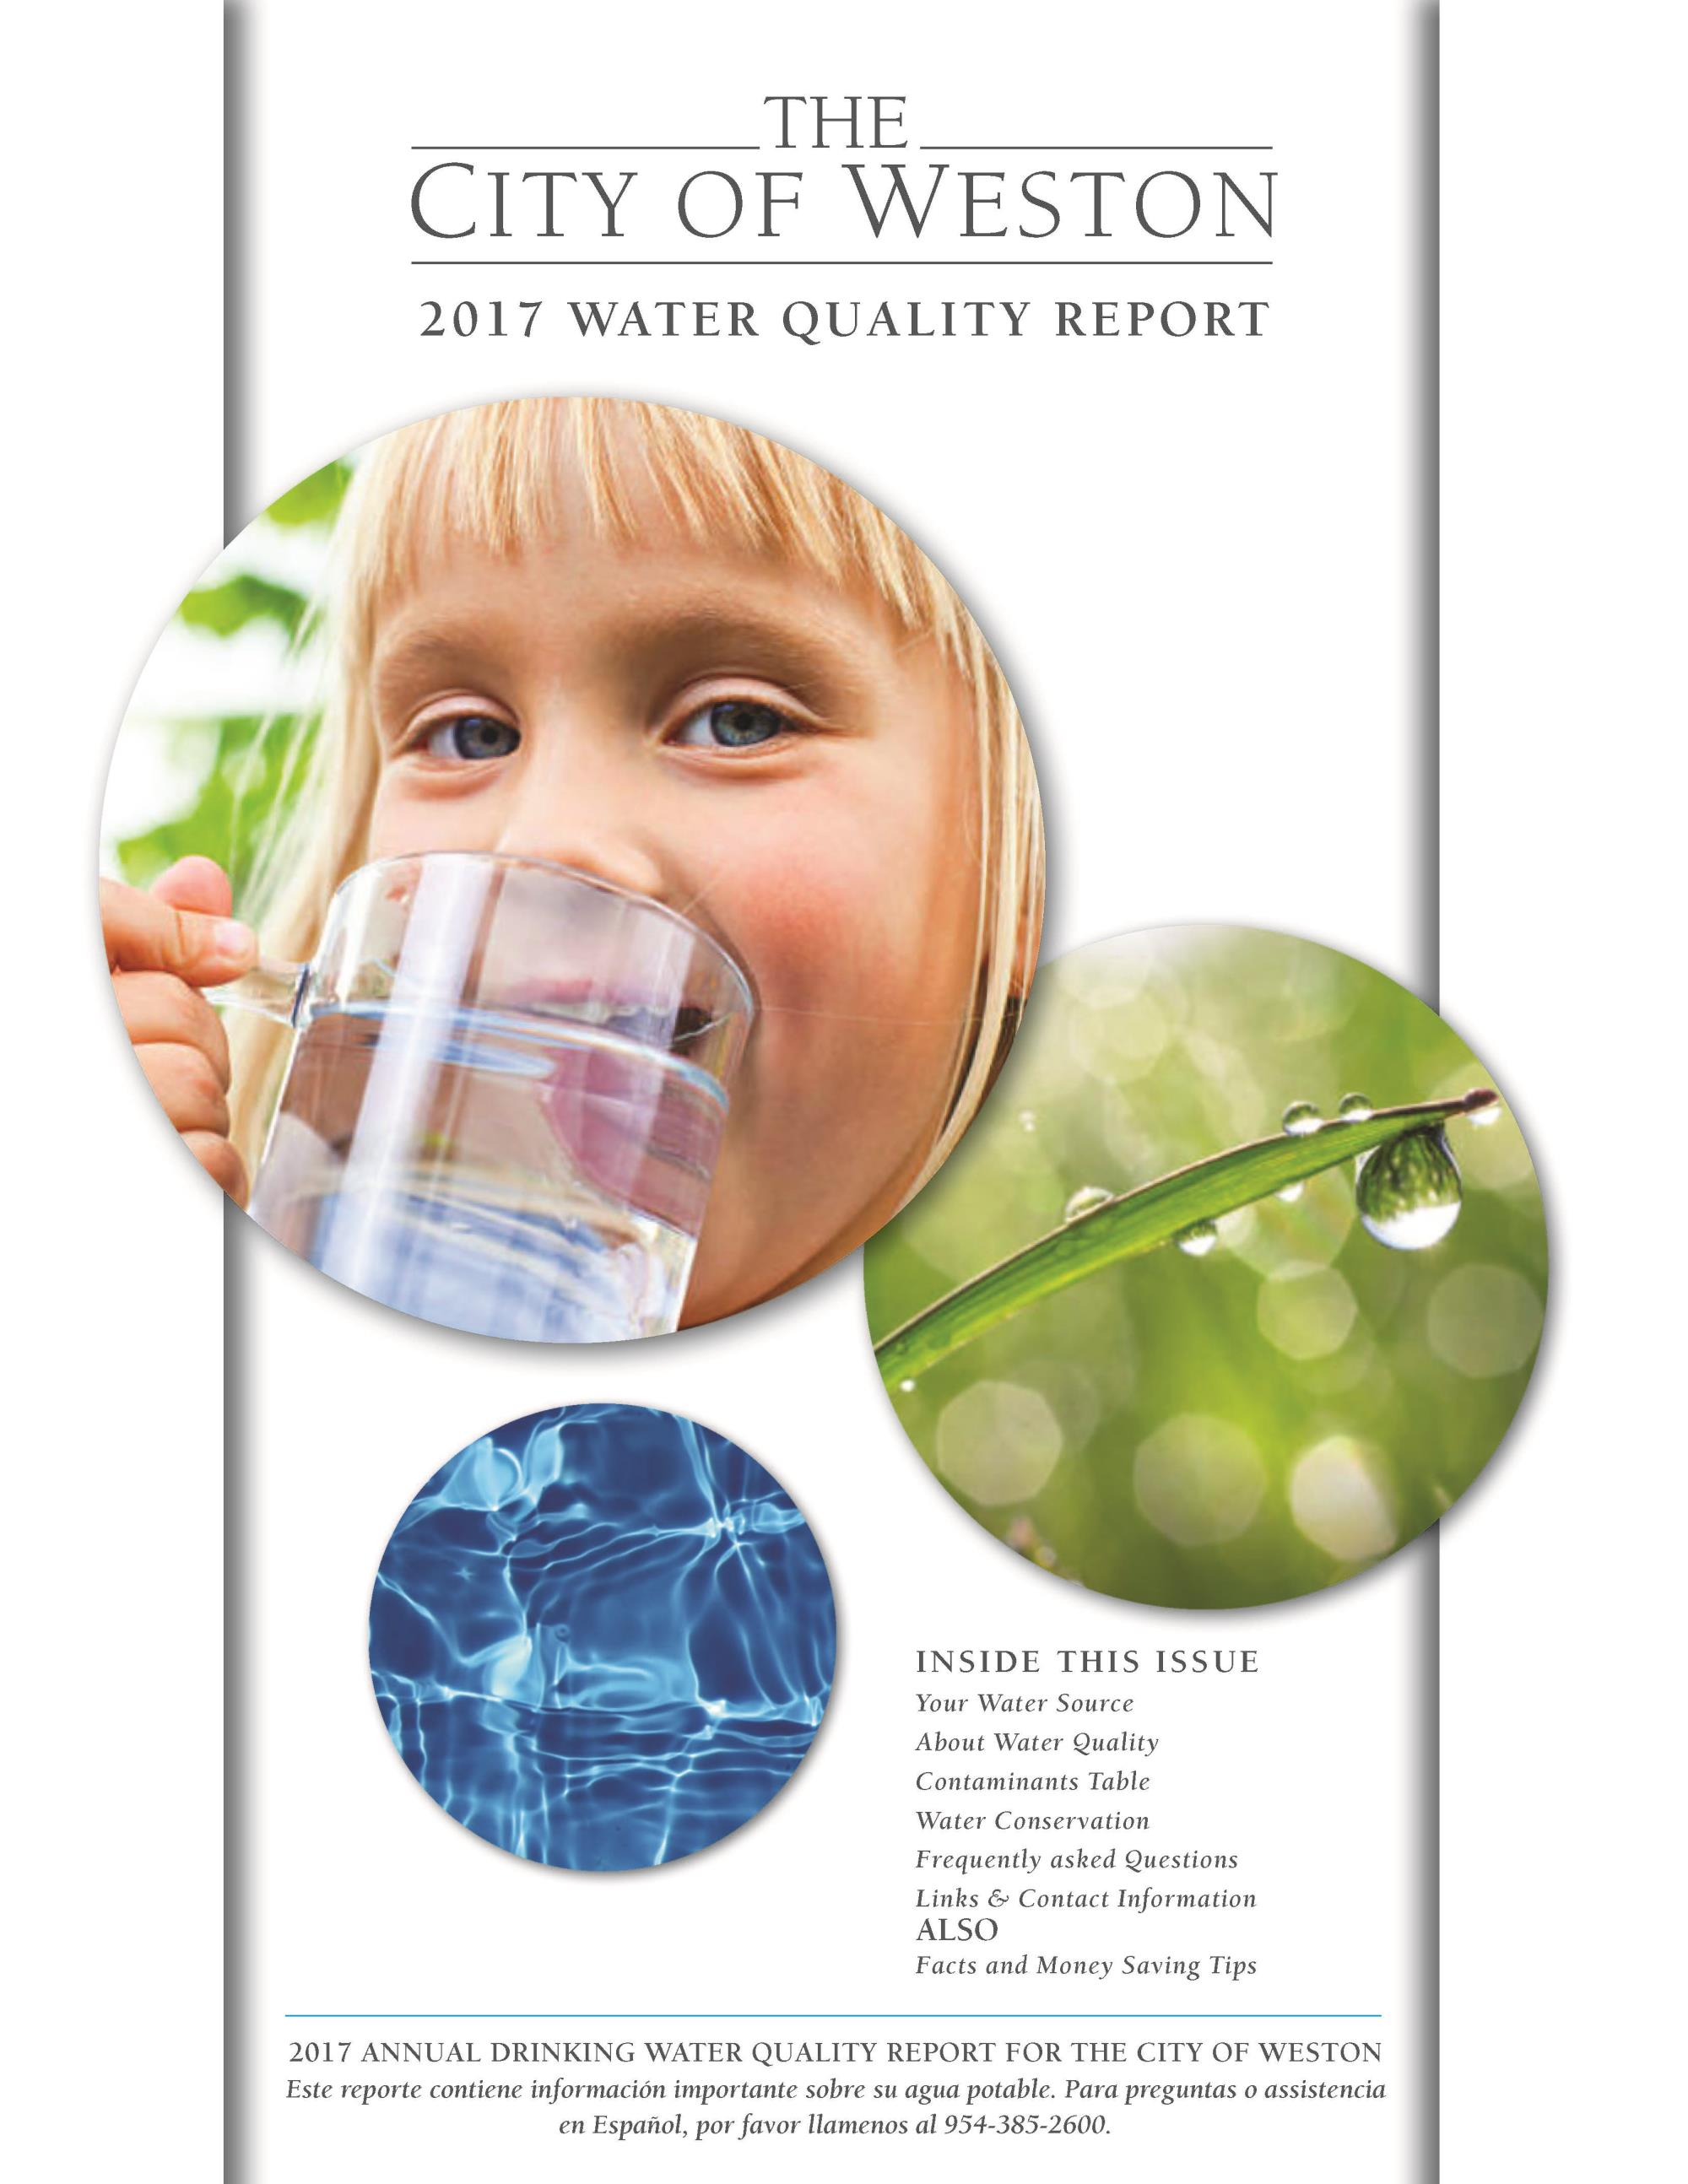 City of Weston 2017 Water Quality Report (Cover)